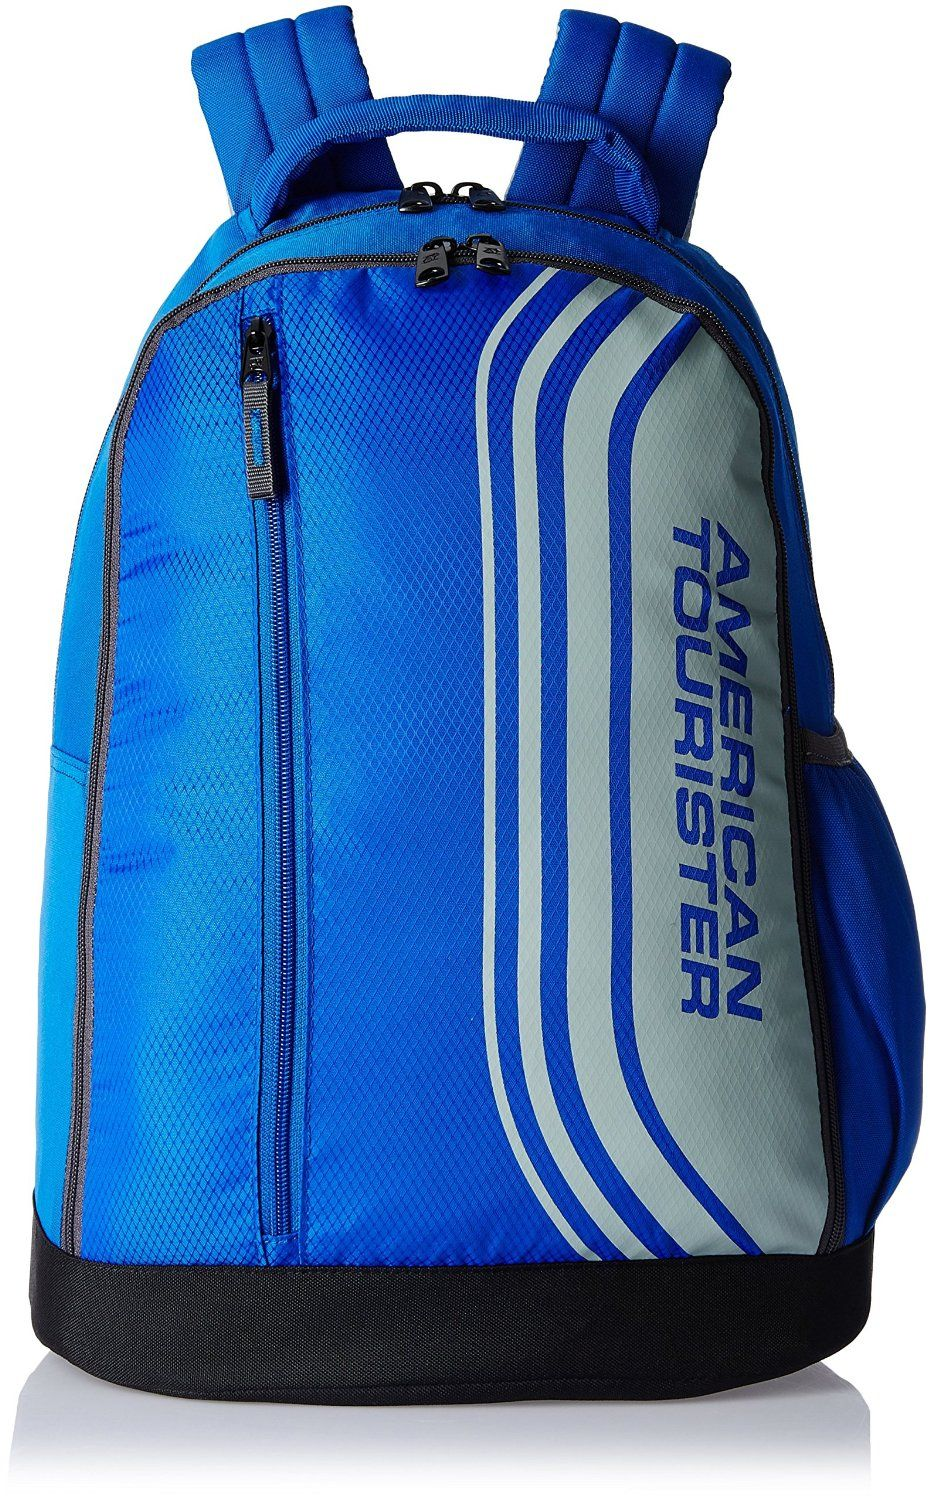 American Tourister Casper Blue Casual Backpack  AmericanTourister  travel   bags  backpack cbcdfbf78c20e